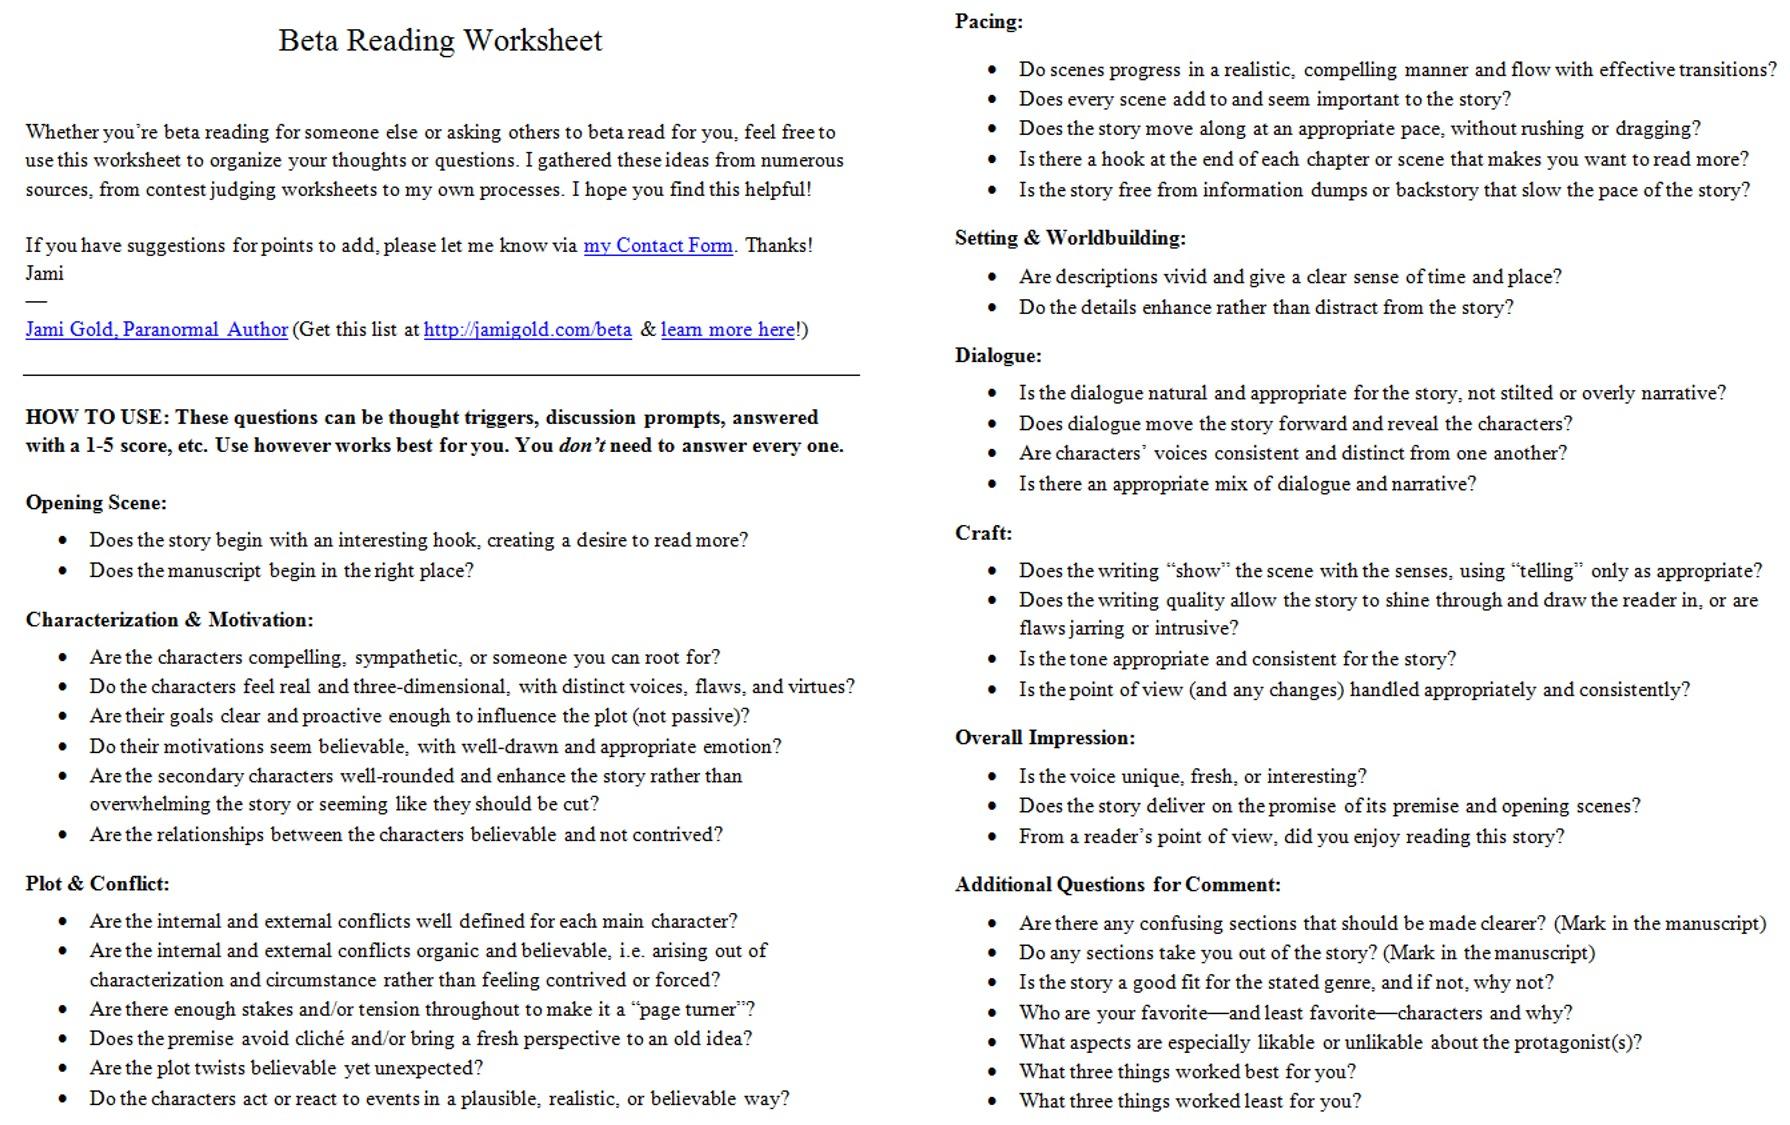 Weirdmailus  Remarkable Worksheets For Writers  Jami Gold Paranormal Author With Entrancing Screen Shot Of The Twopage Beta Reading Worksheet With Breathtaking Unit Rates And Ratios Worksheets Also Plot Summary Worksheet In Addition Basic Math Fact Worksheets And Preschool Letter J Worksheets As Well As Multiplications Worksheets For Rd Grade Additionally Density Worksheet Elementary From Jamigoldcom With Weirdmailus  Entrancing Worksheets For Writers  Jami Gold Paranormal Author With Breathtaking Screen Shot Of The Twopage Beta Reading Worksheet And Remarkable Unit Rates And Ratios Worksheets Also Plot Summary Worksheet In Addition Basic Math Fact Worksheets From Jamigoldcom